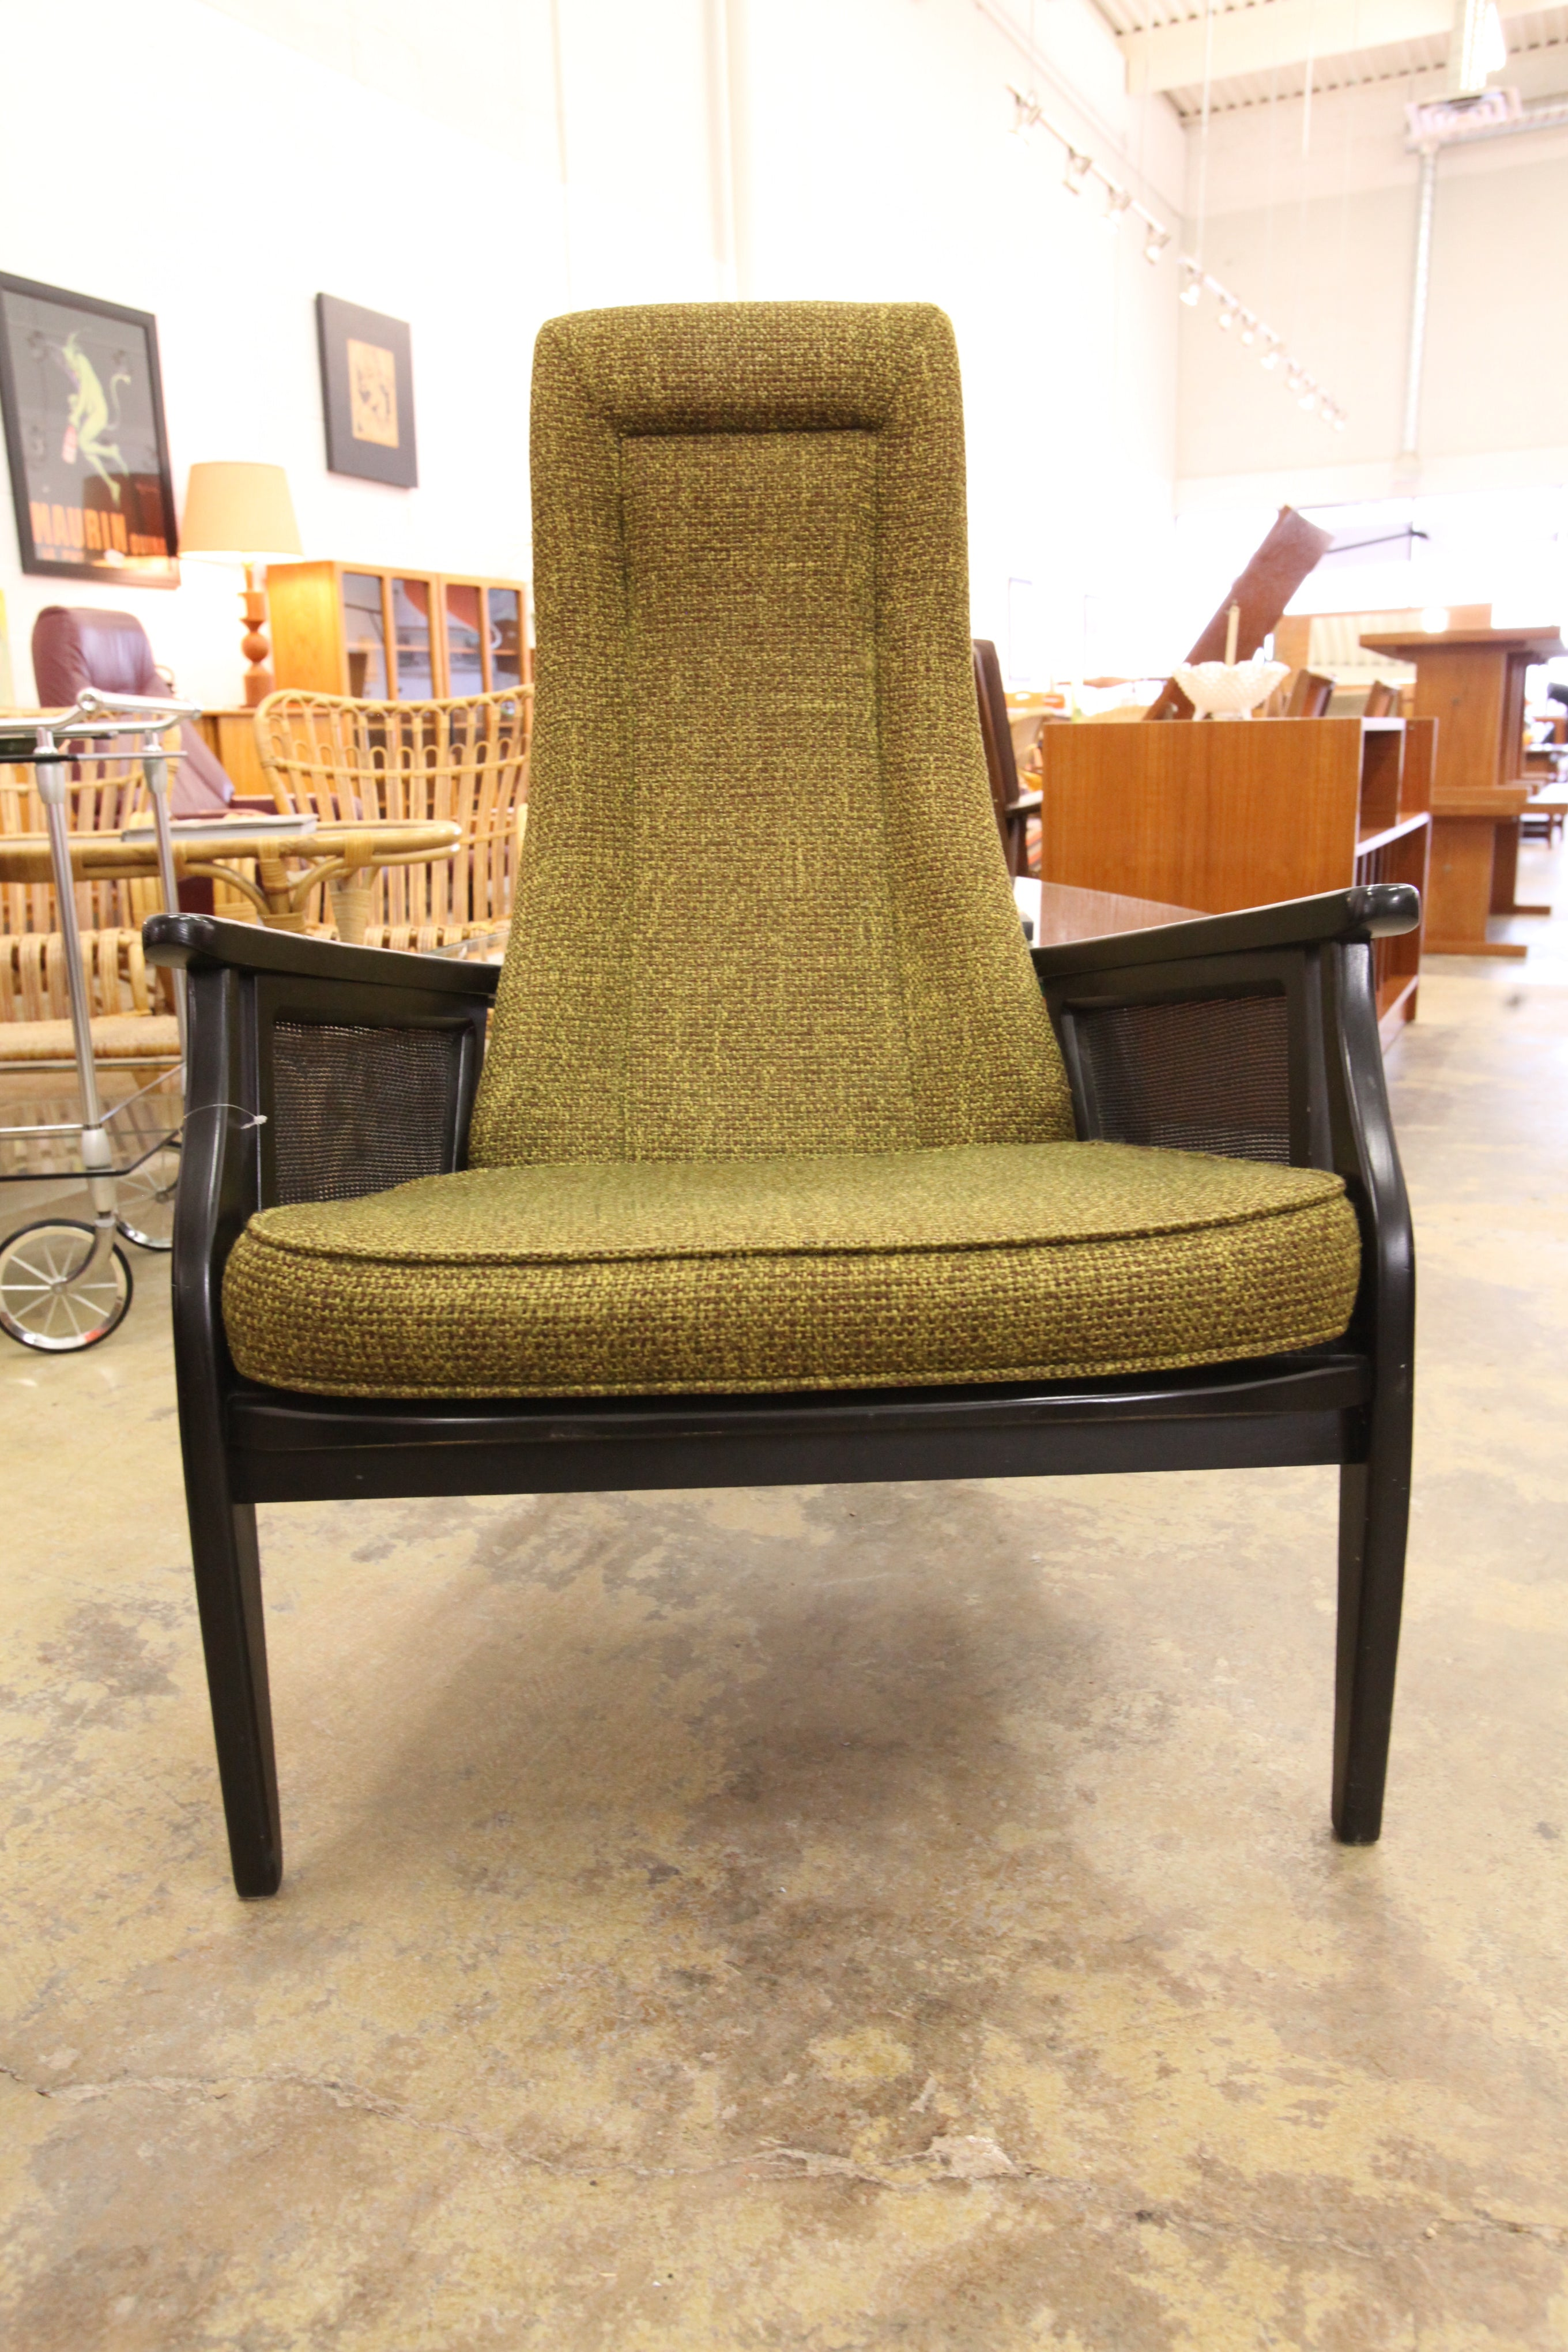 "Unique Vintage Lounge Chair (27.25""W x 38.5""H x 30""D)"